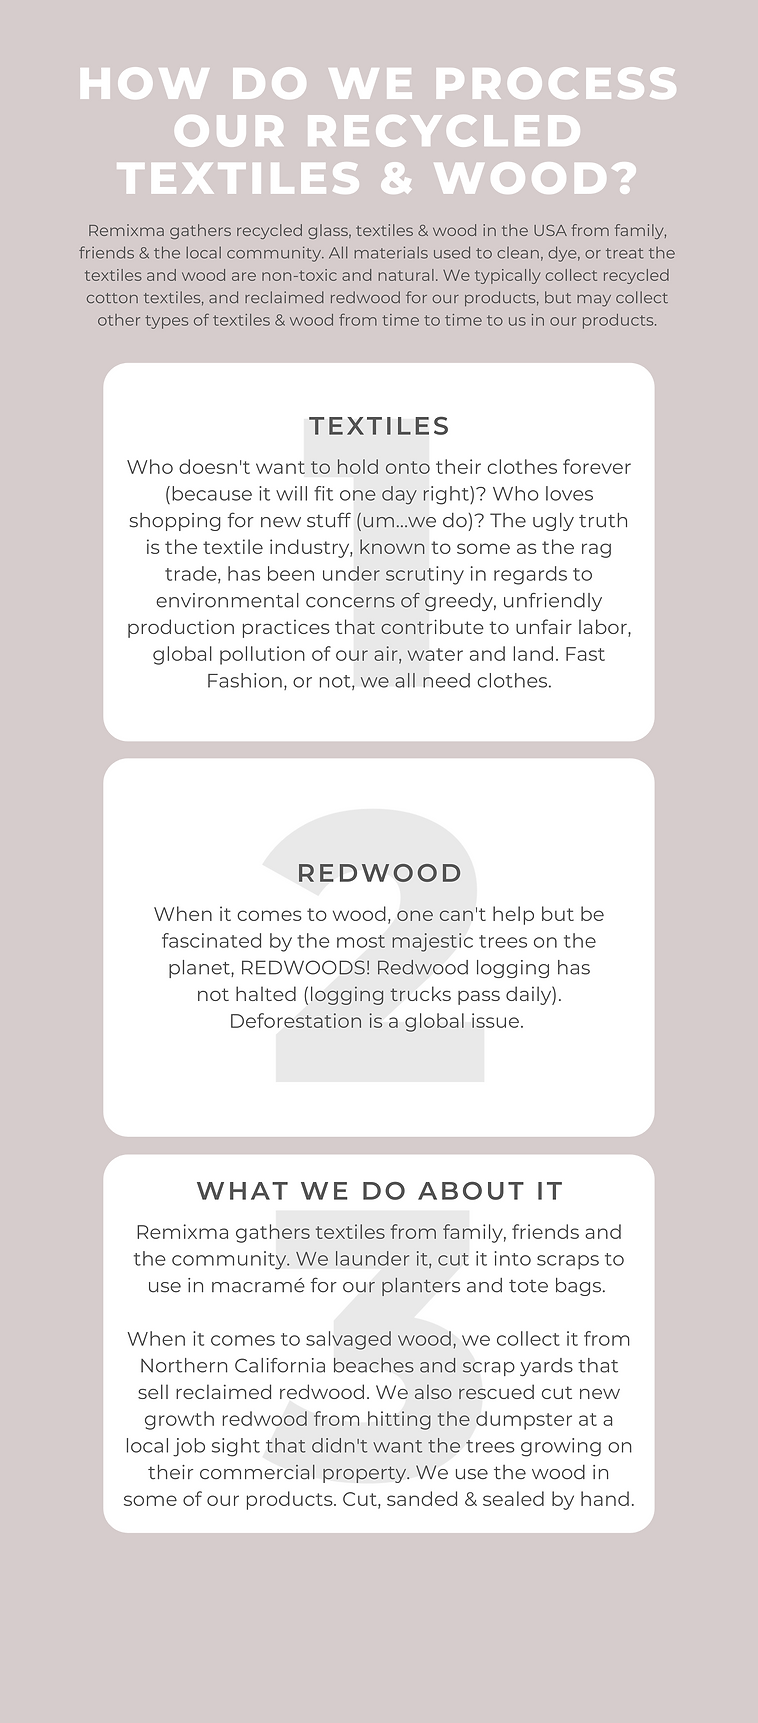 what we recycle glass, textiles and wood